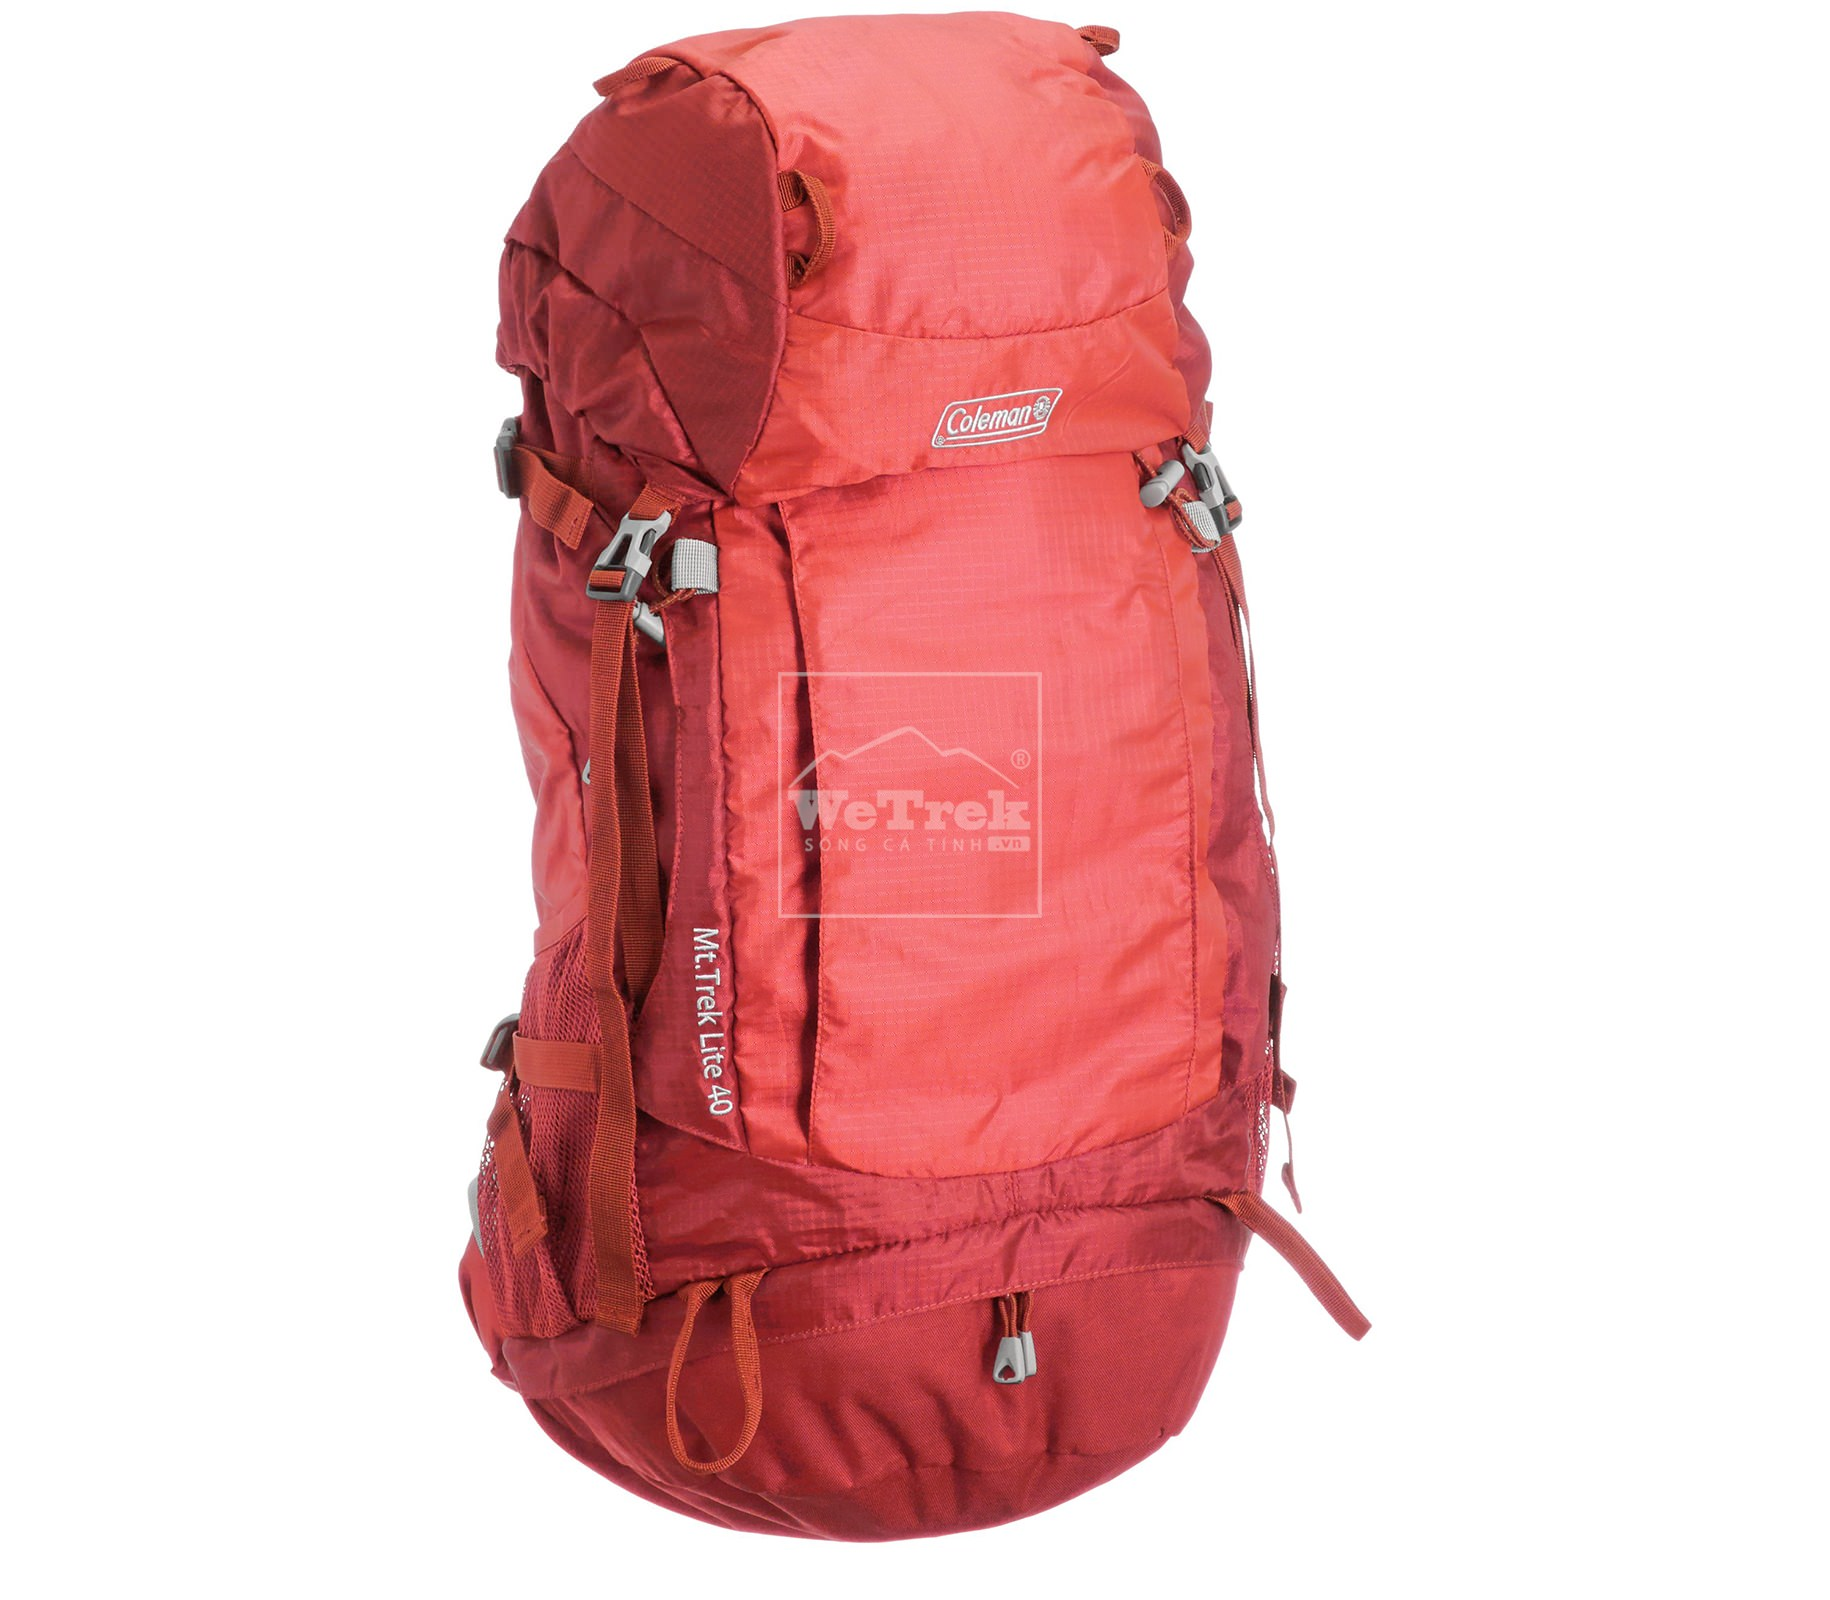 Ba lô leo núi 40L Coleman Mt. Trek Lite Backpack Red CBB4091RD - 7456